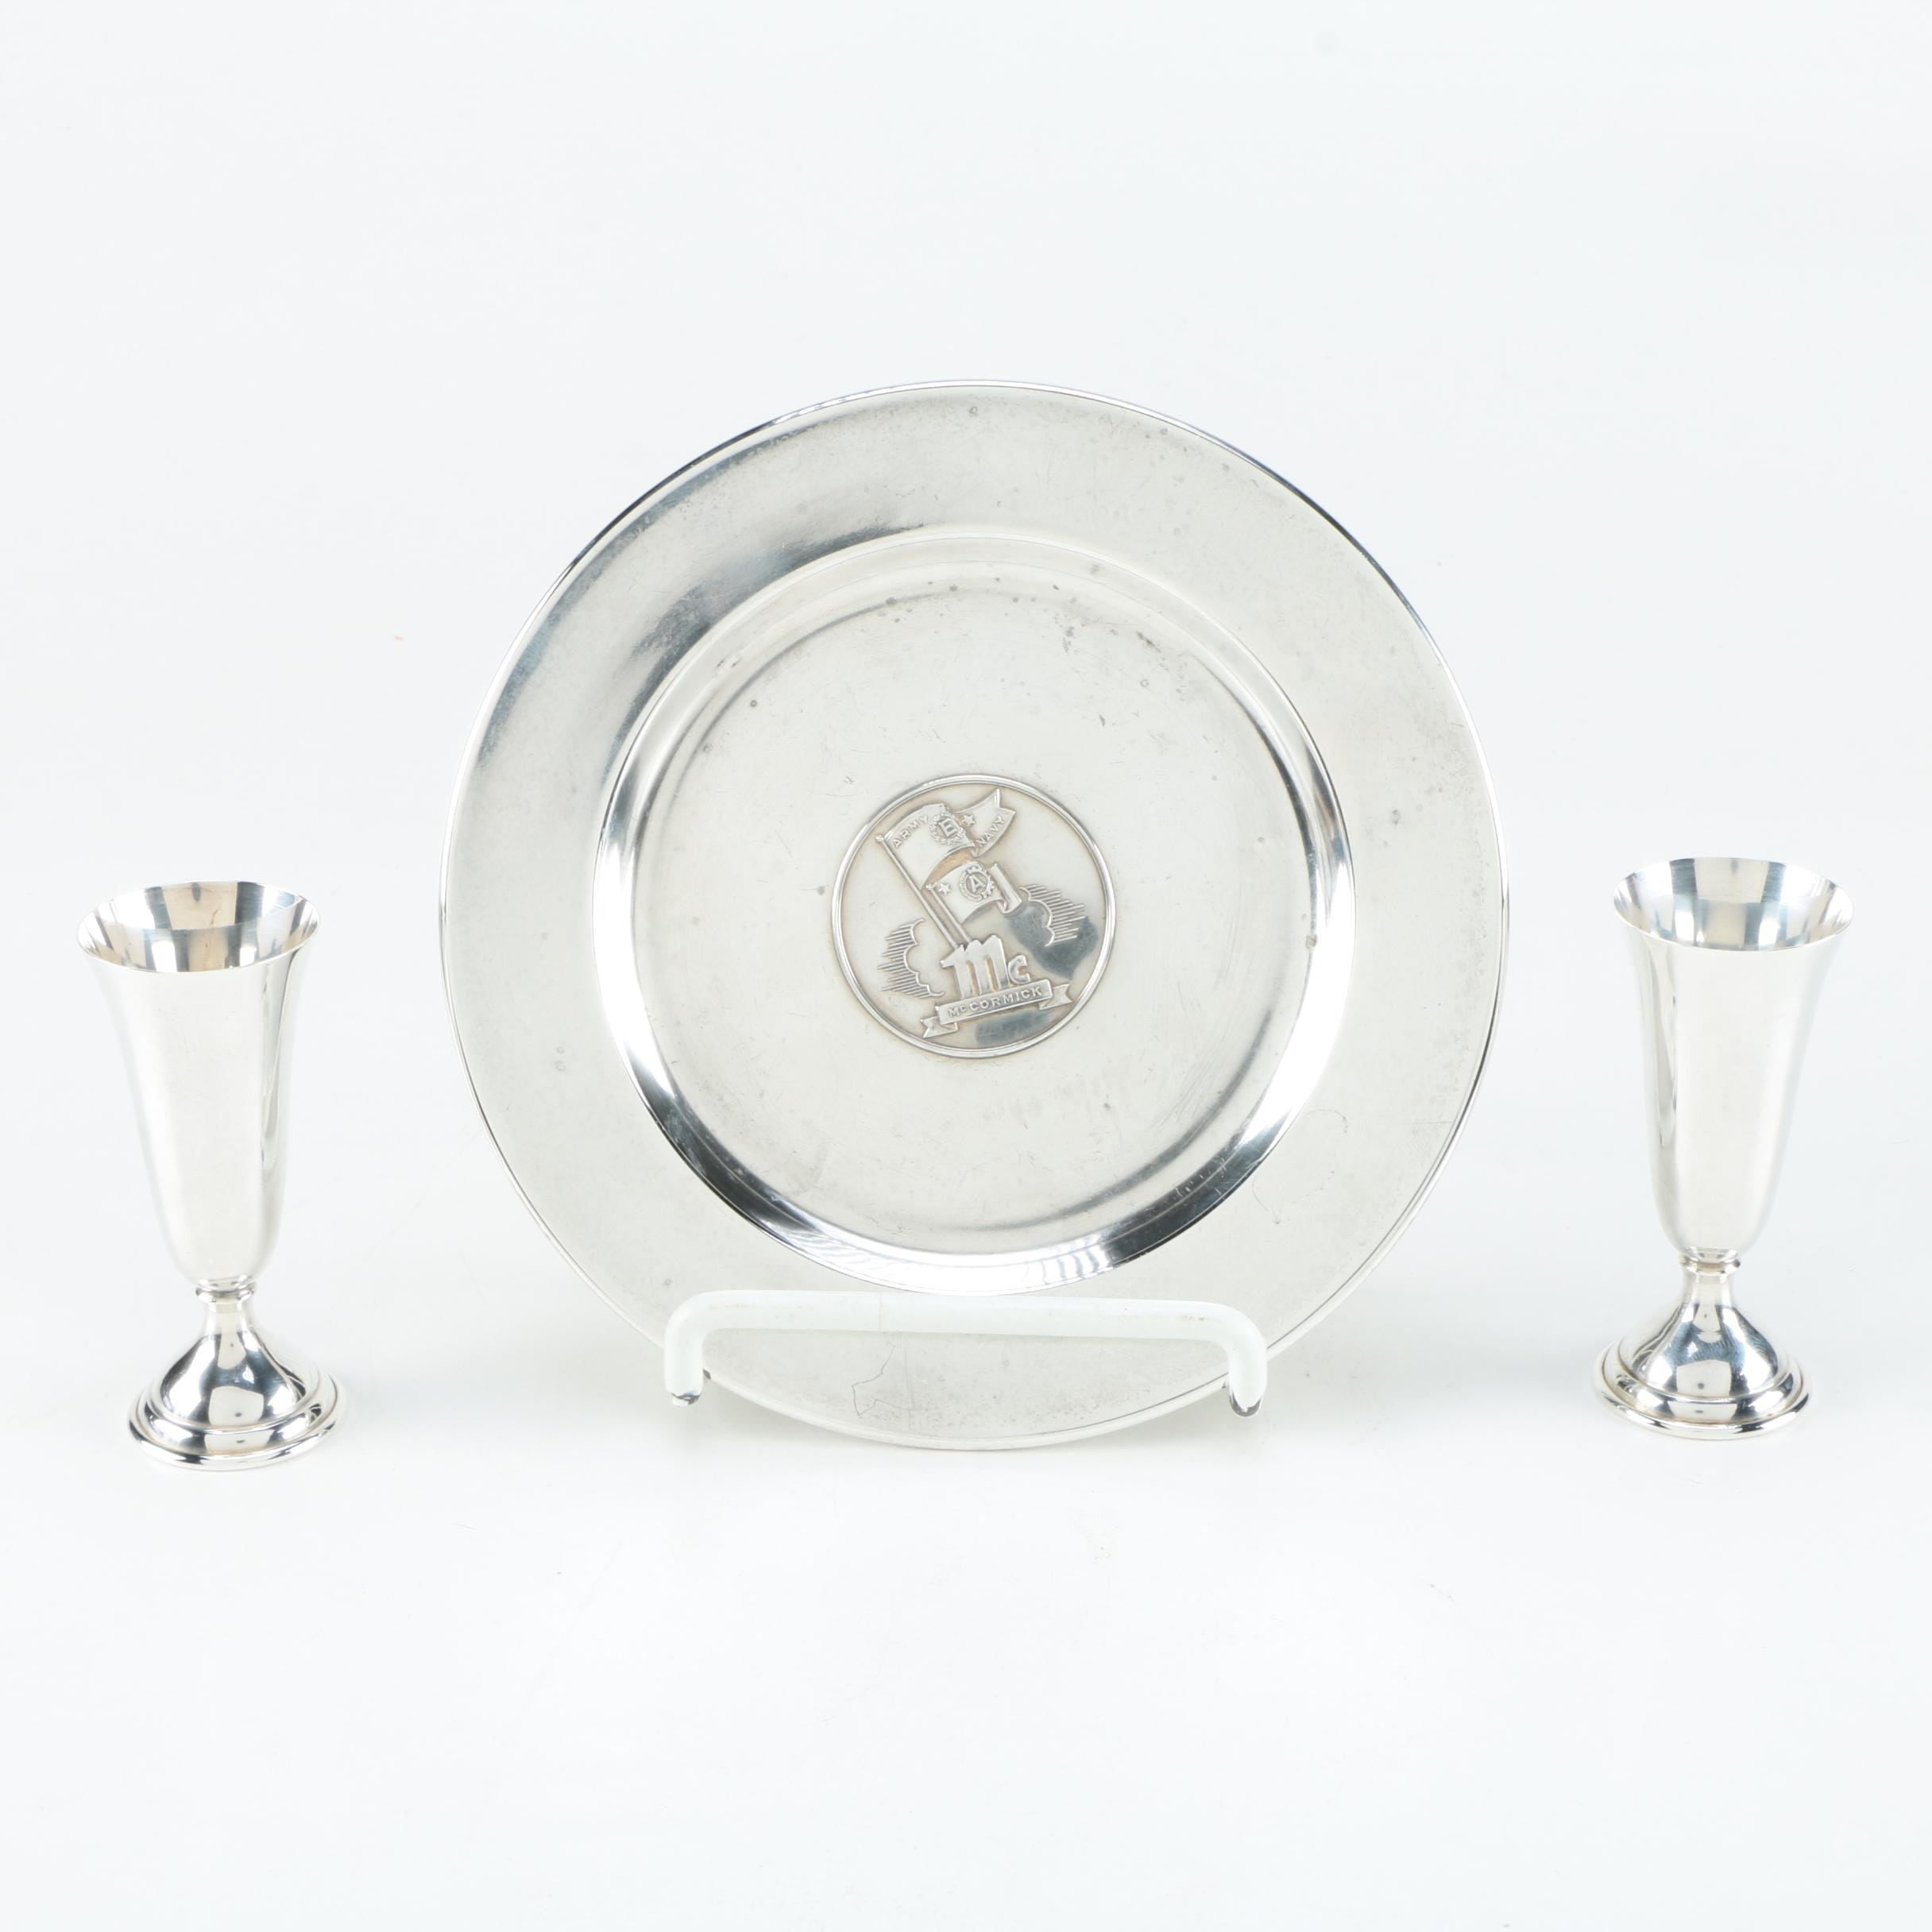 James R. Armiger Co. and Randahl Sterling Silver Tableware